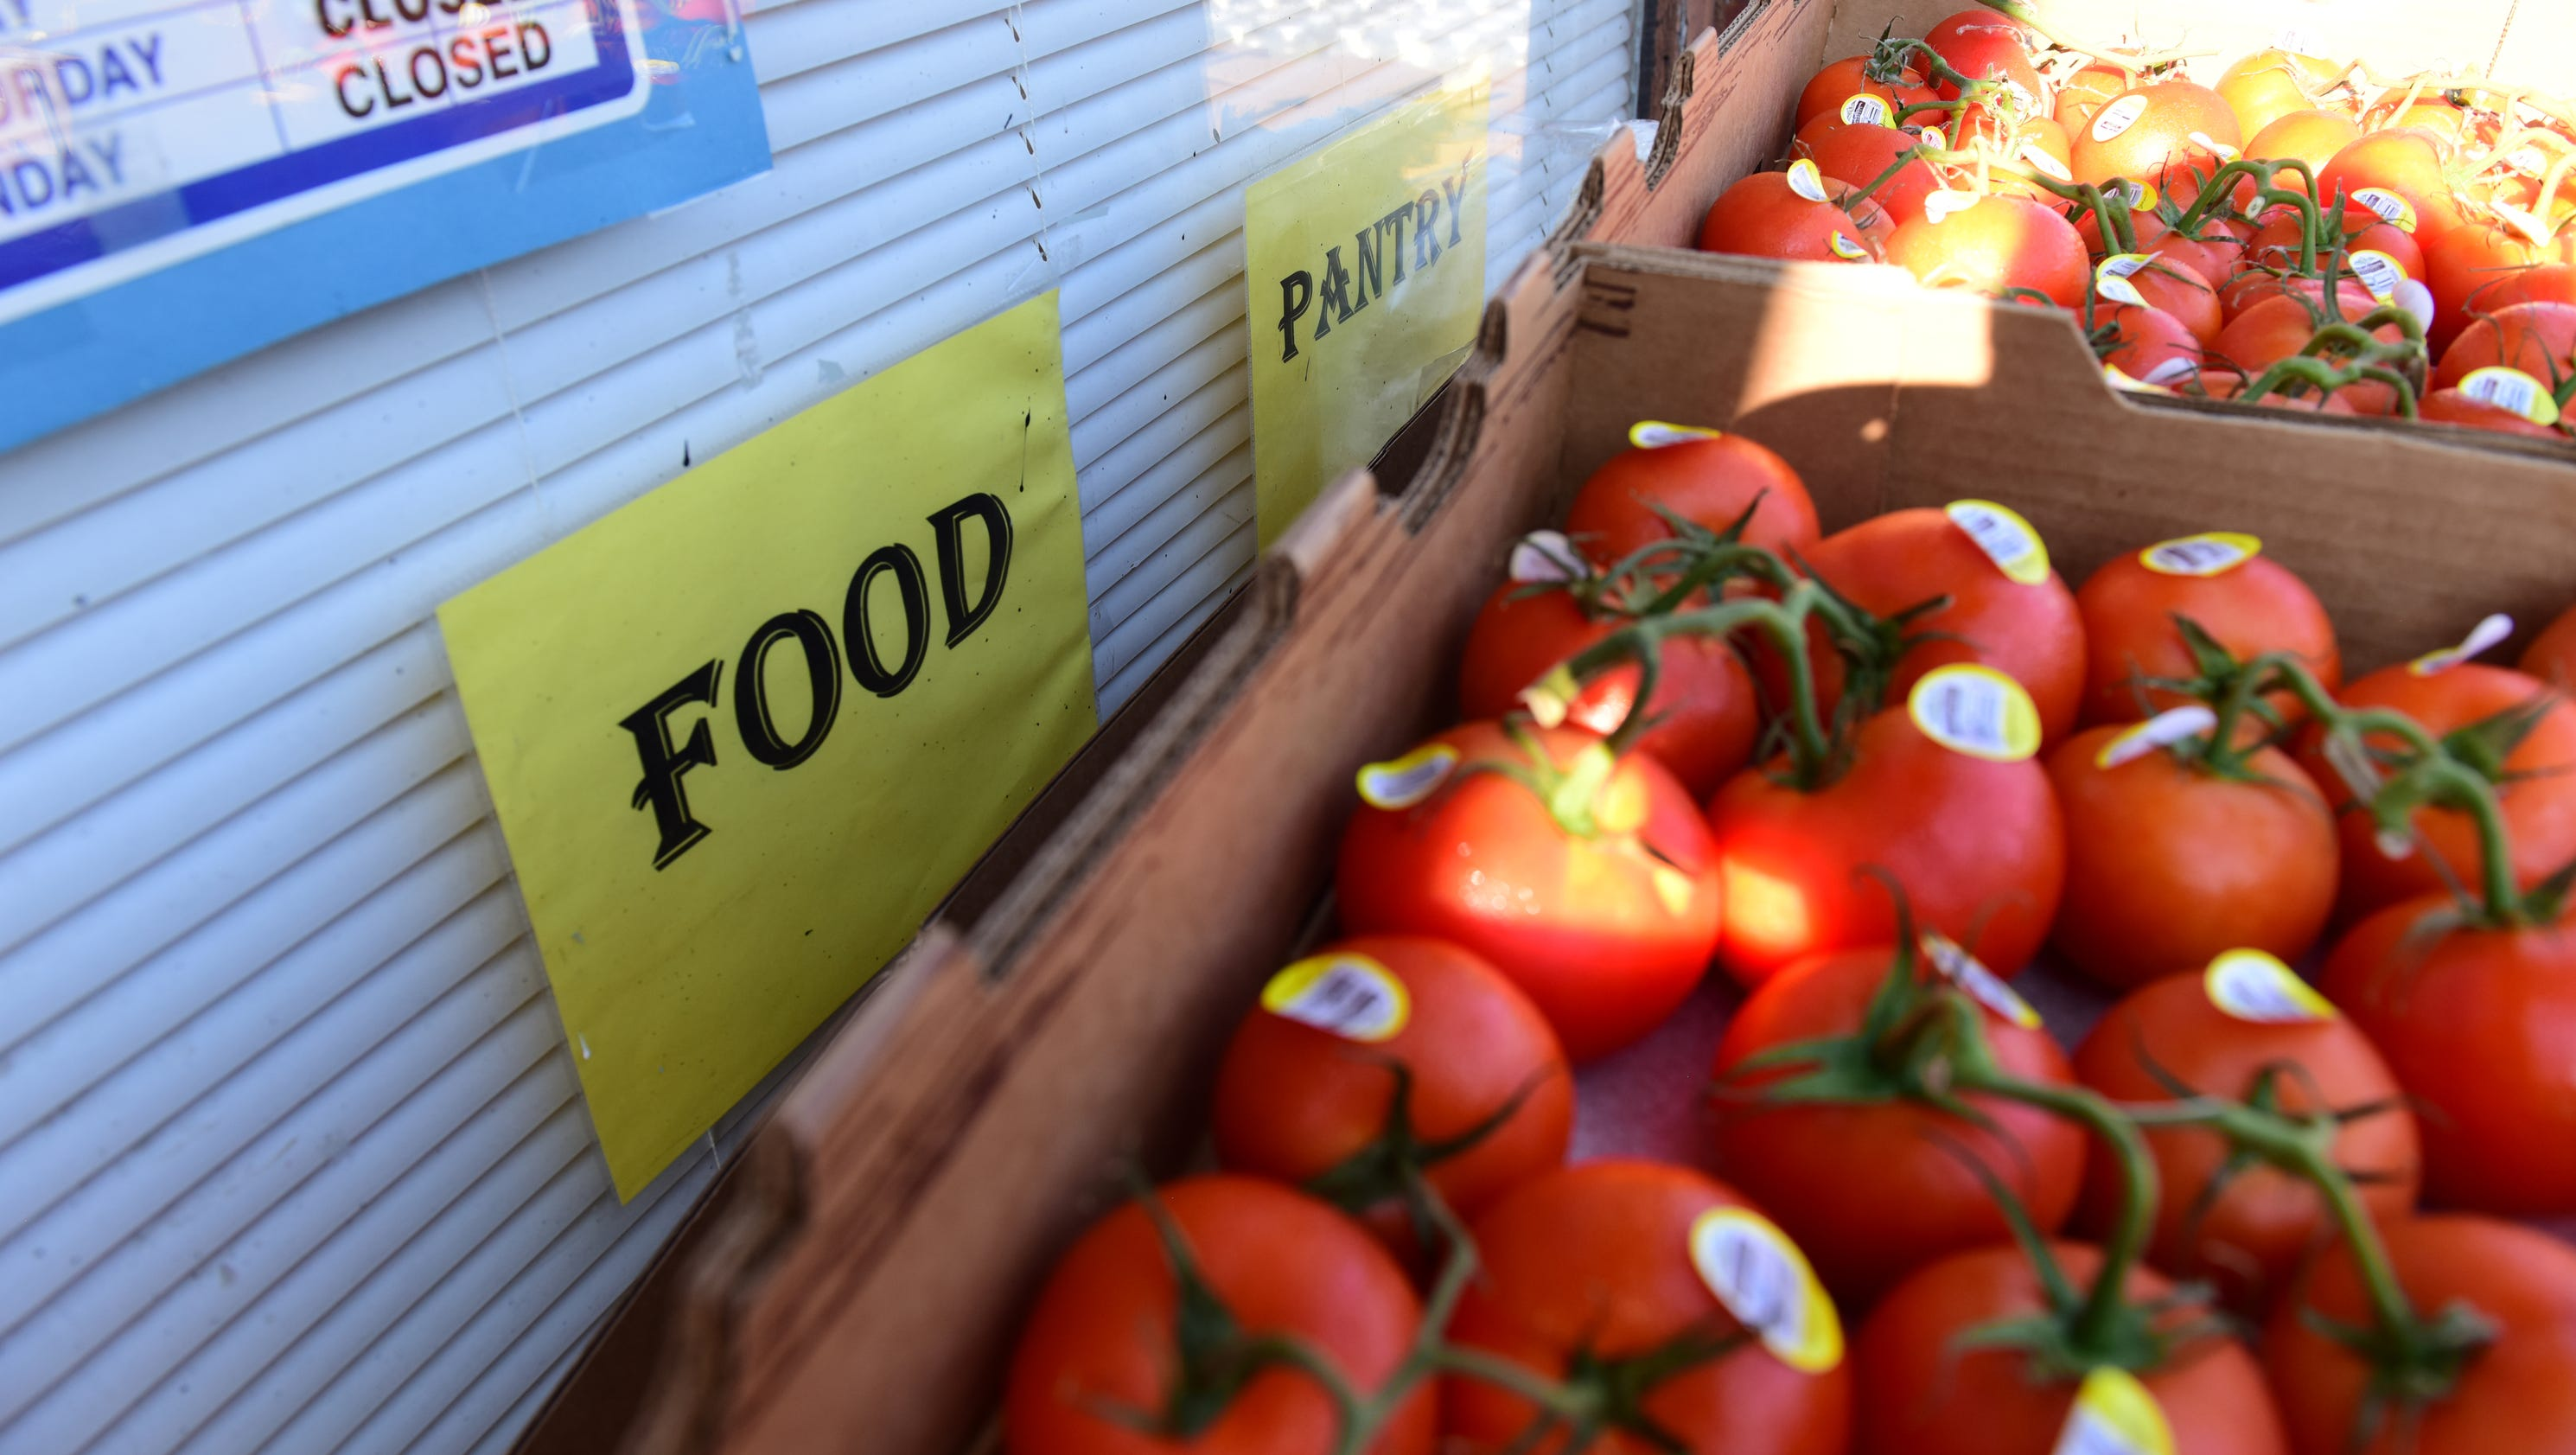 Local Food Banks Open Today